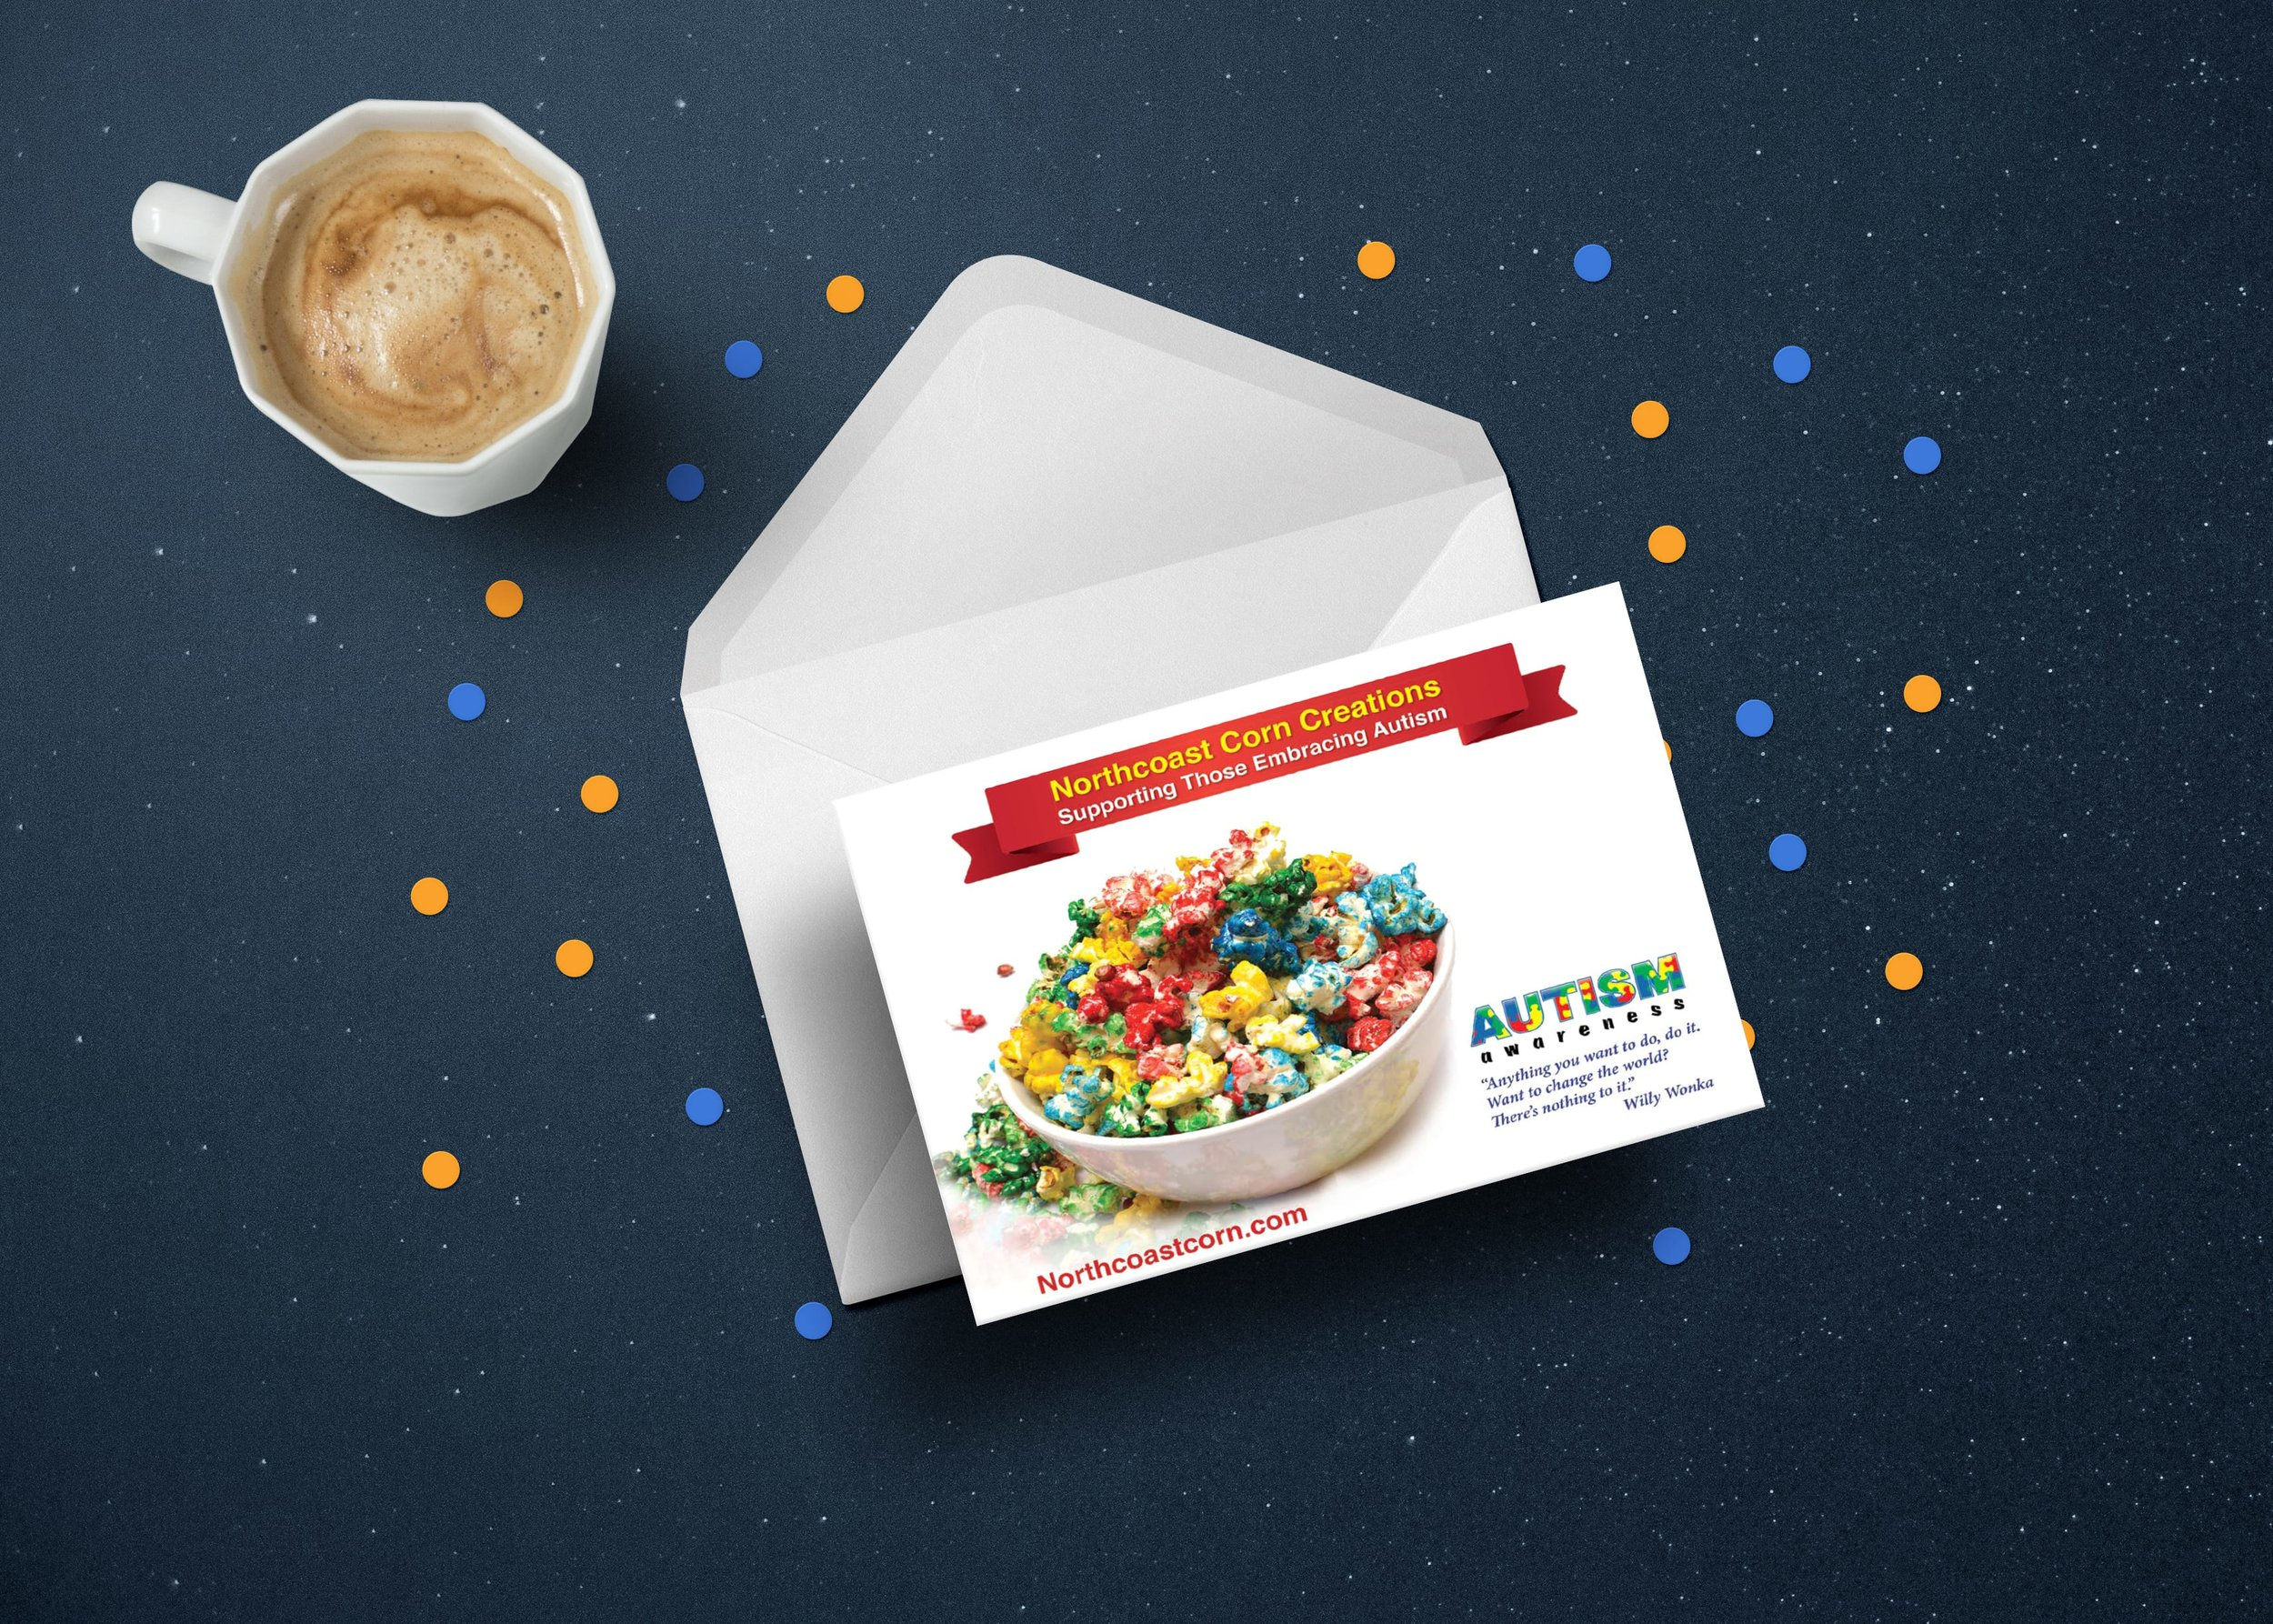 Northcoast-corn-creations-autism-popcorn-personalized-cards-cleveland-ohio